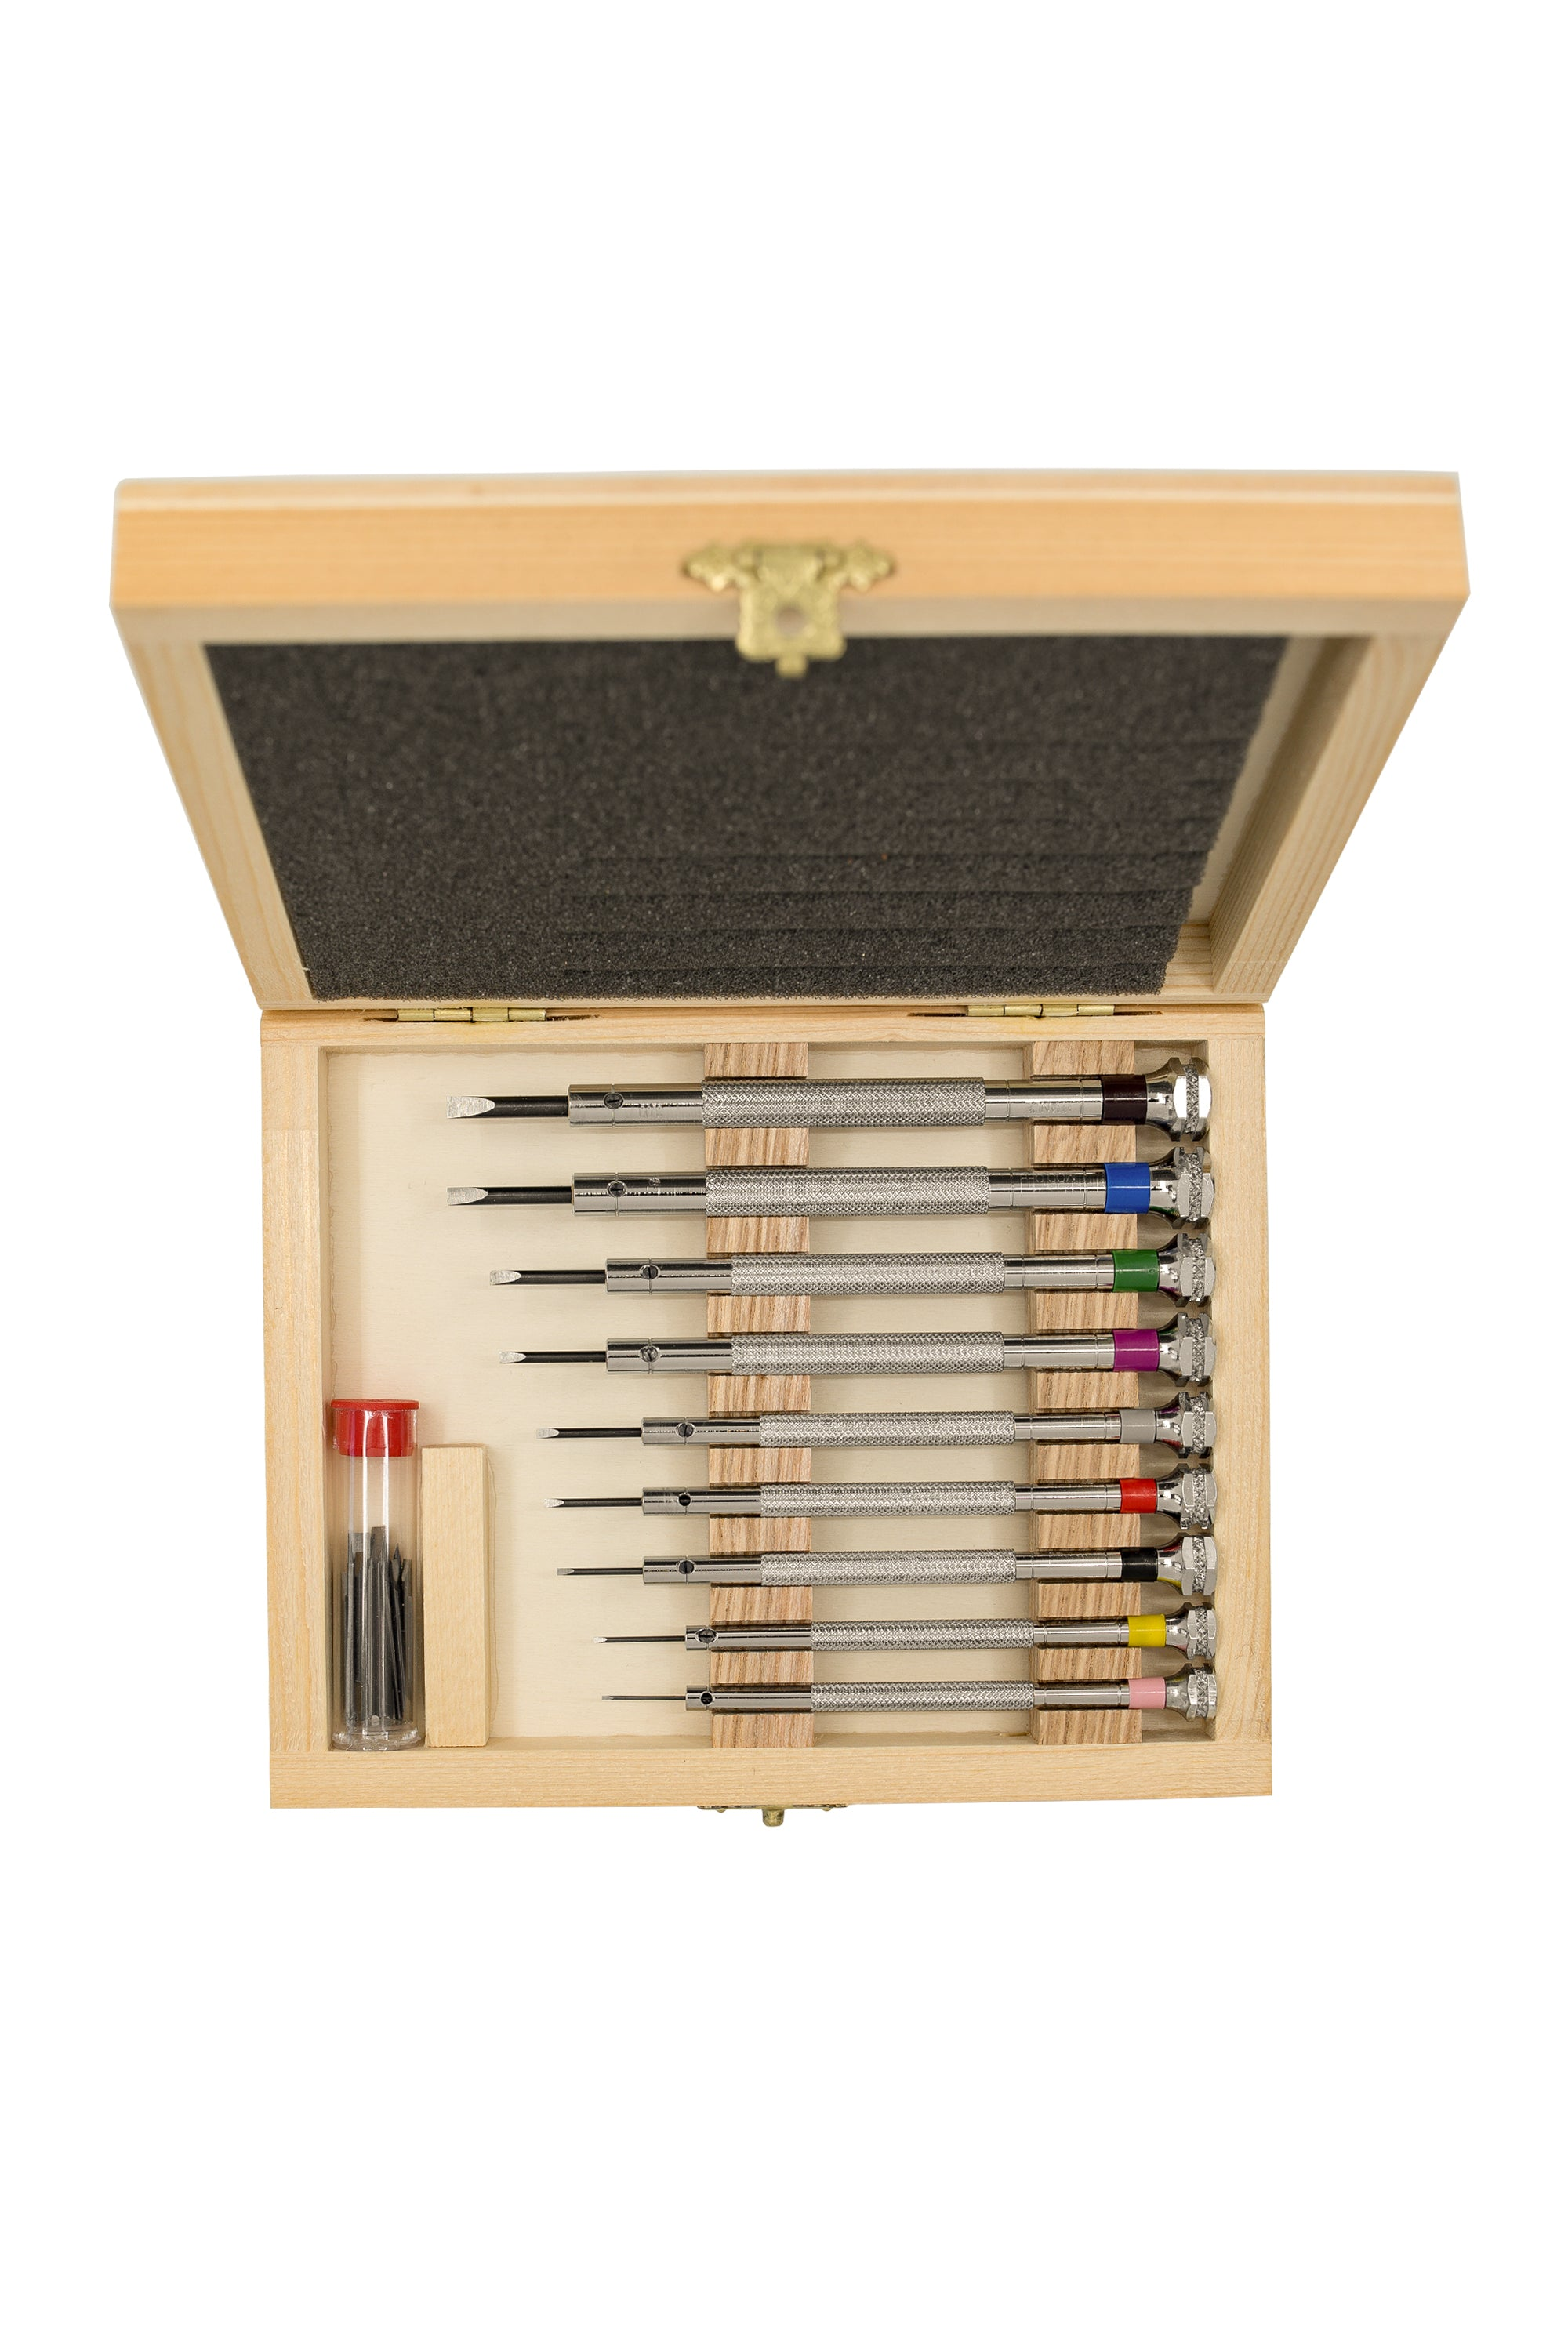 BECO TECHNIC Watch Screwdriver Wooden Box Set